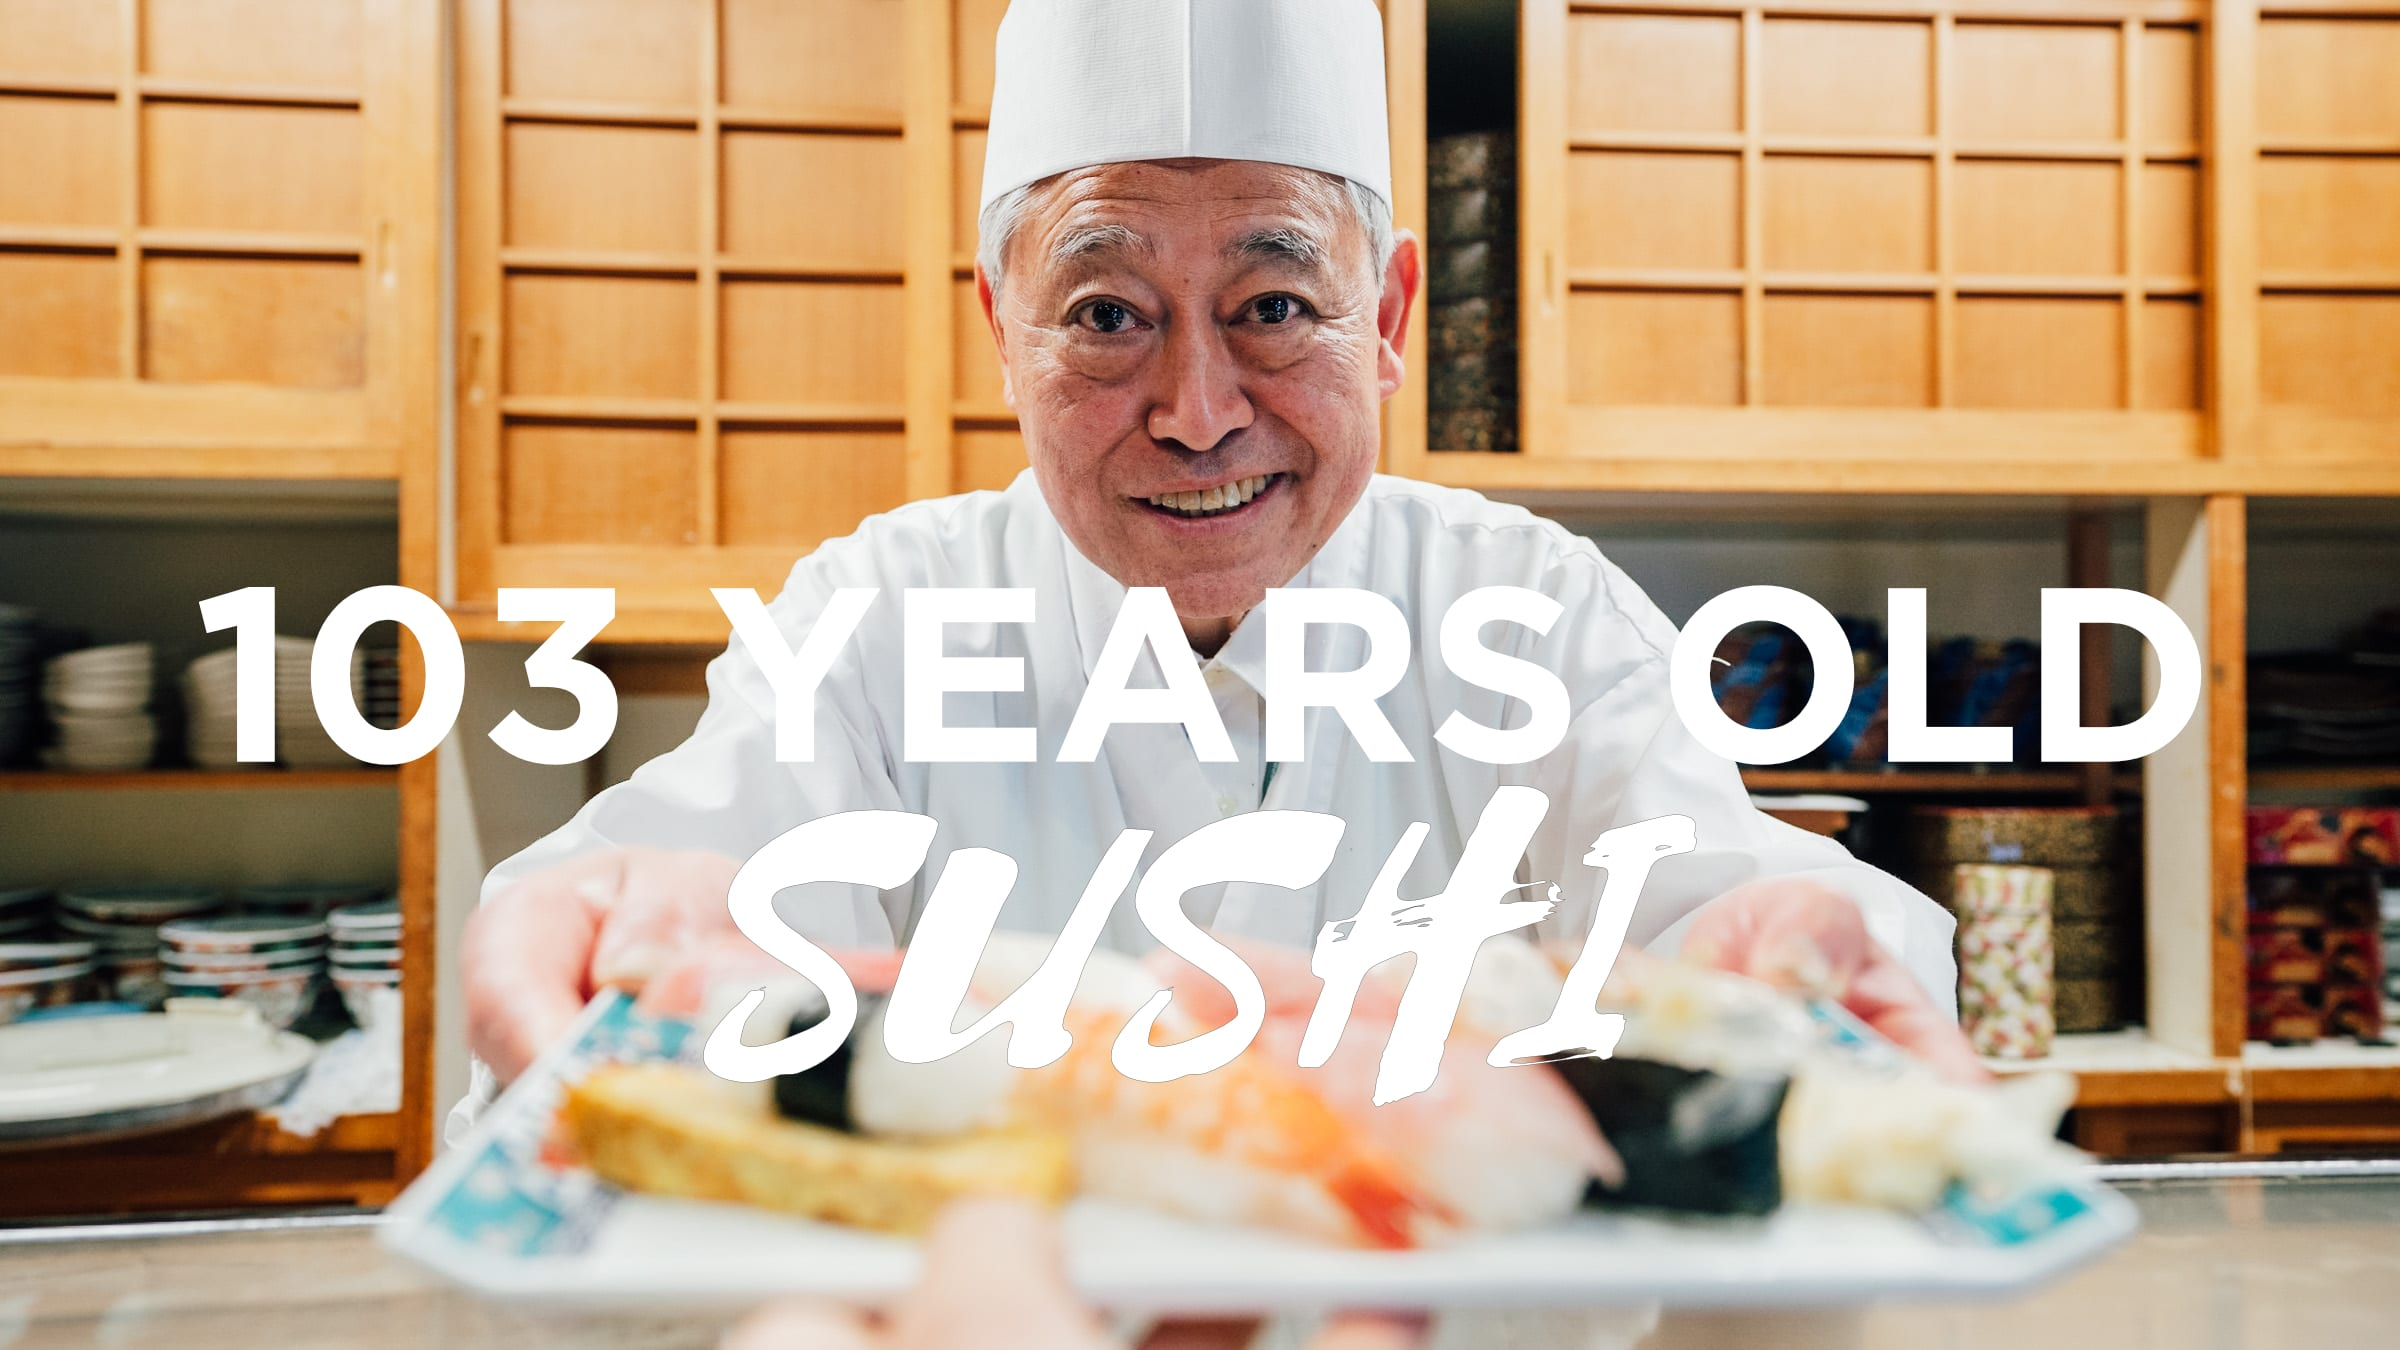 Day Trip from Tokyo: Tasting 103 Years Old Sushi